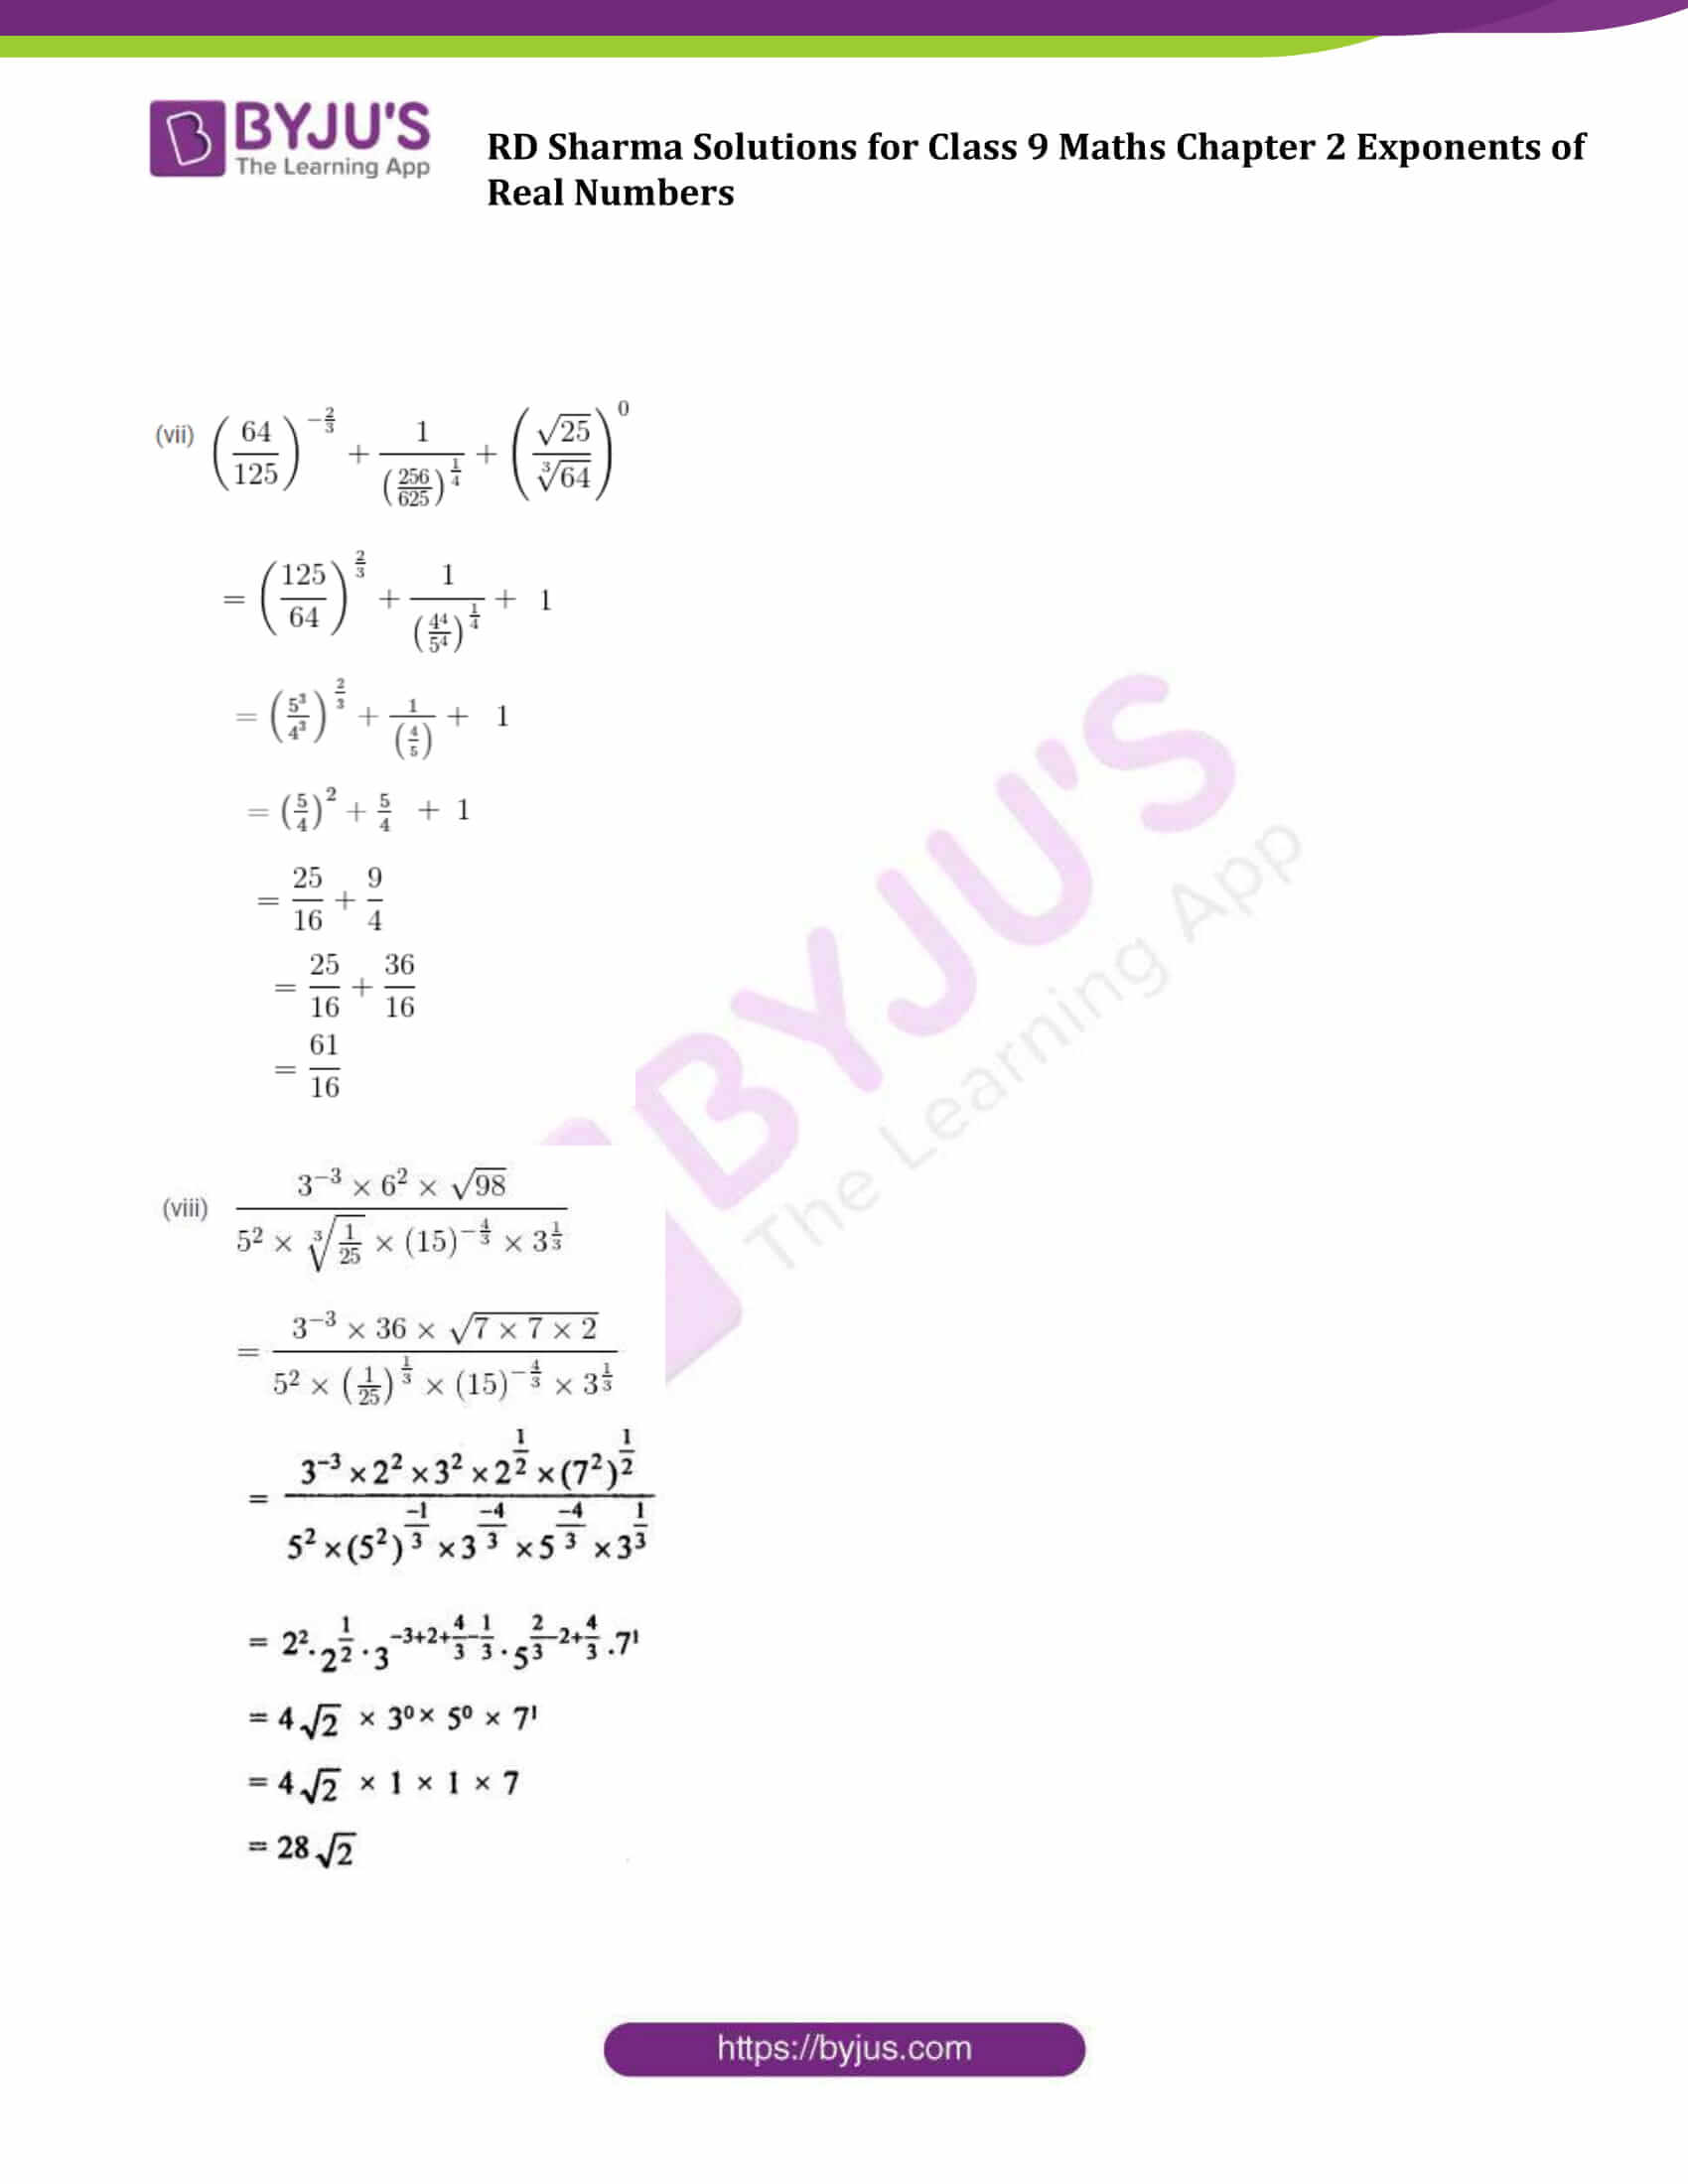 RD Sharma Solution class 9 Maths Chapter 2 Exponents of Real Numbers 19